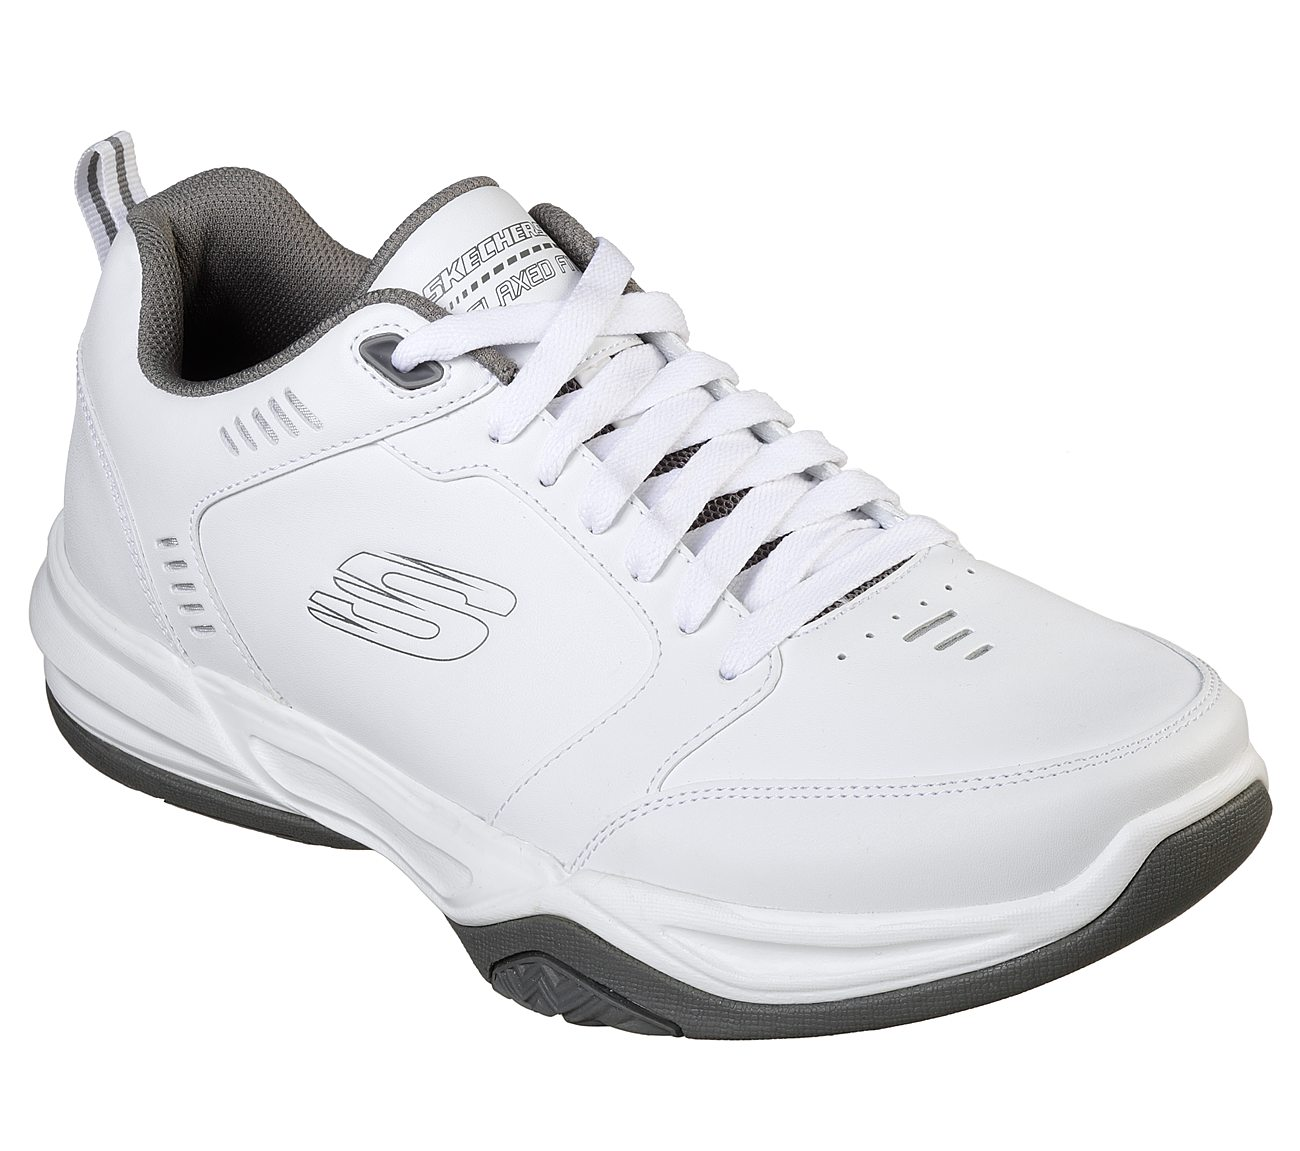 Buy SKECHERS Relaxed Fit: Monaco TR